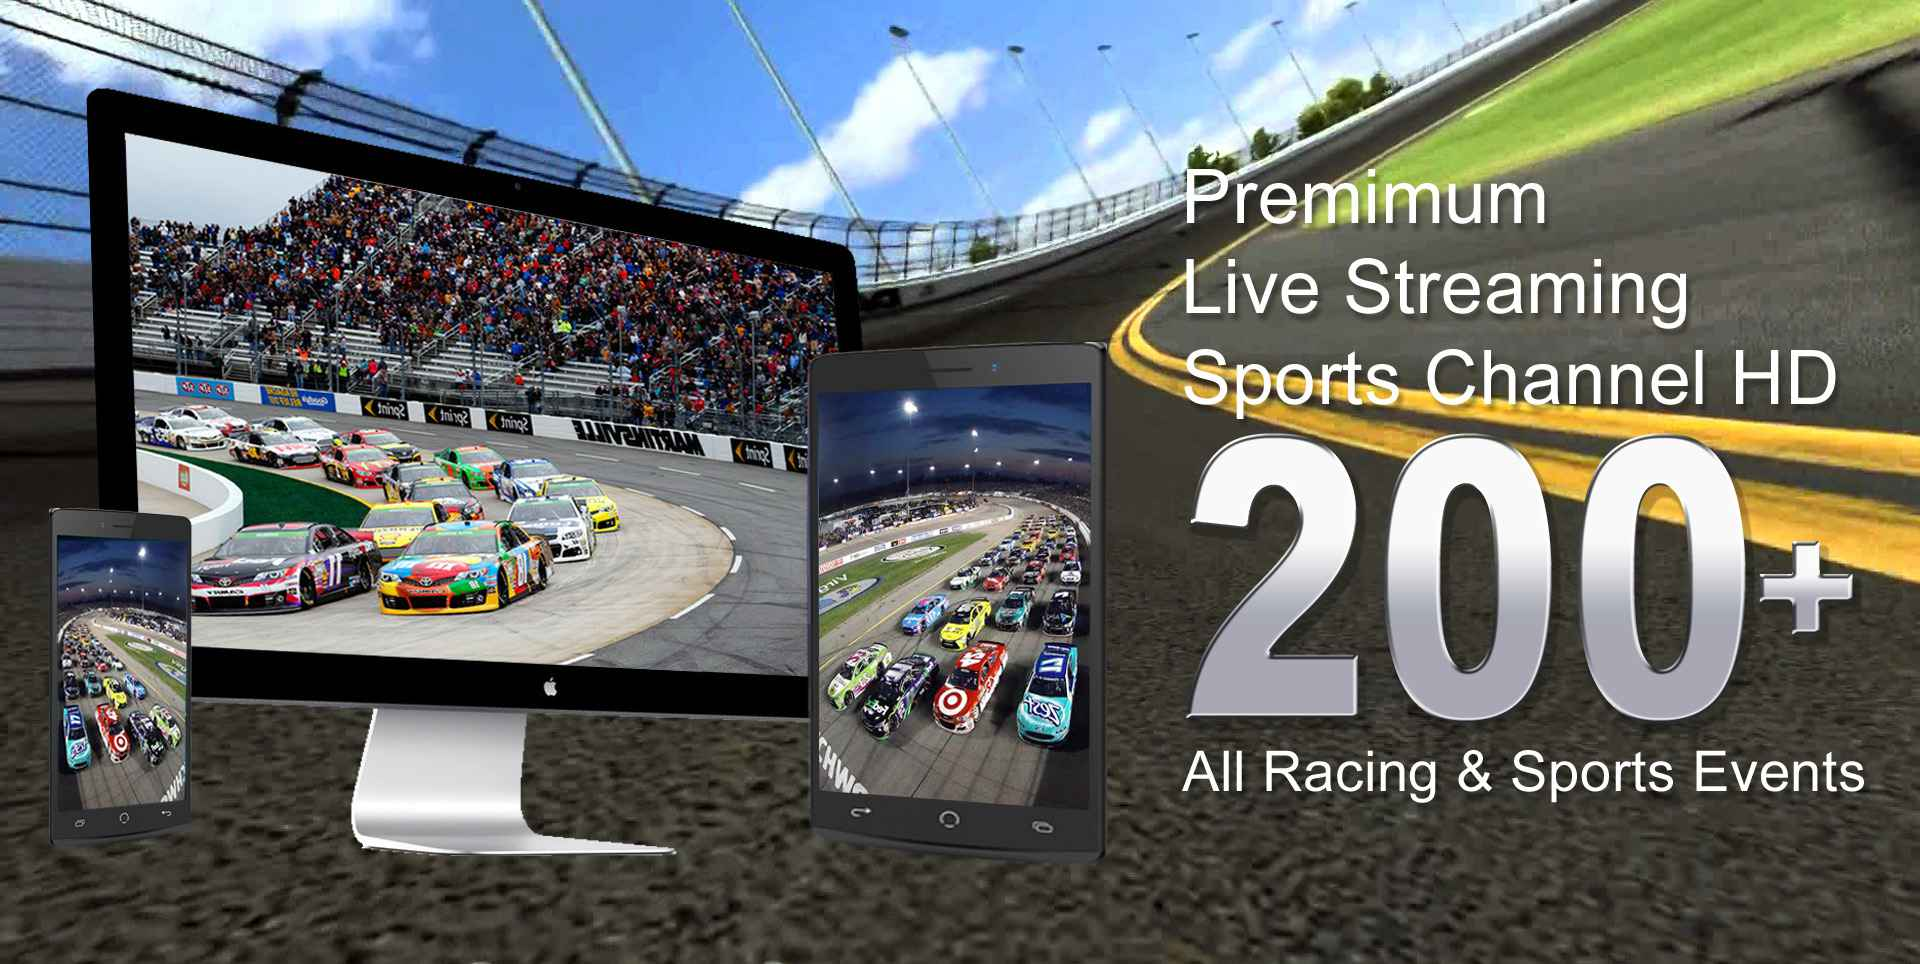 NASCAR Xfinity Series Kentucky 300 Race Live